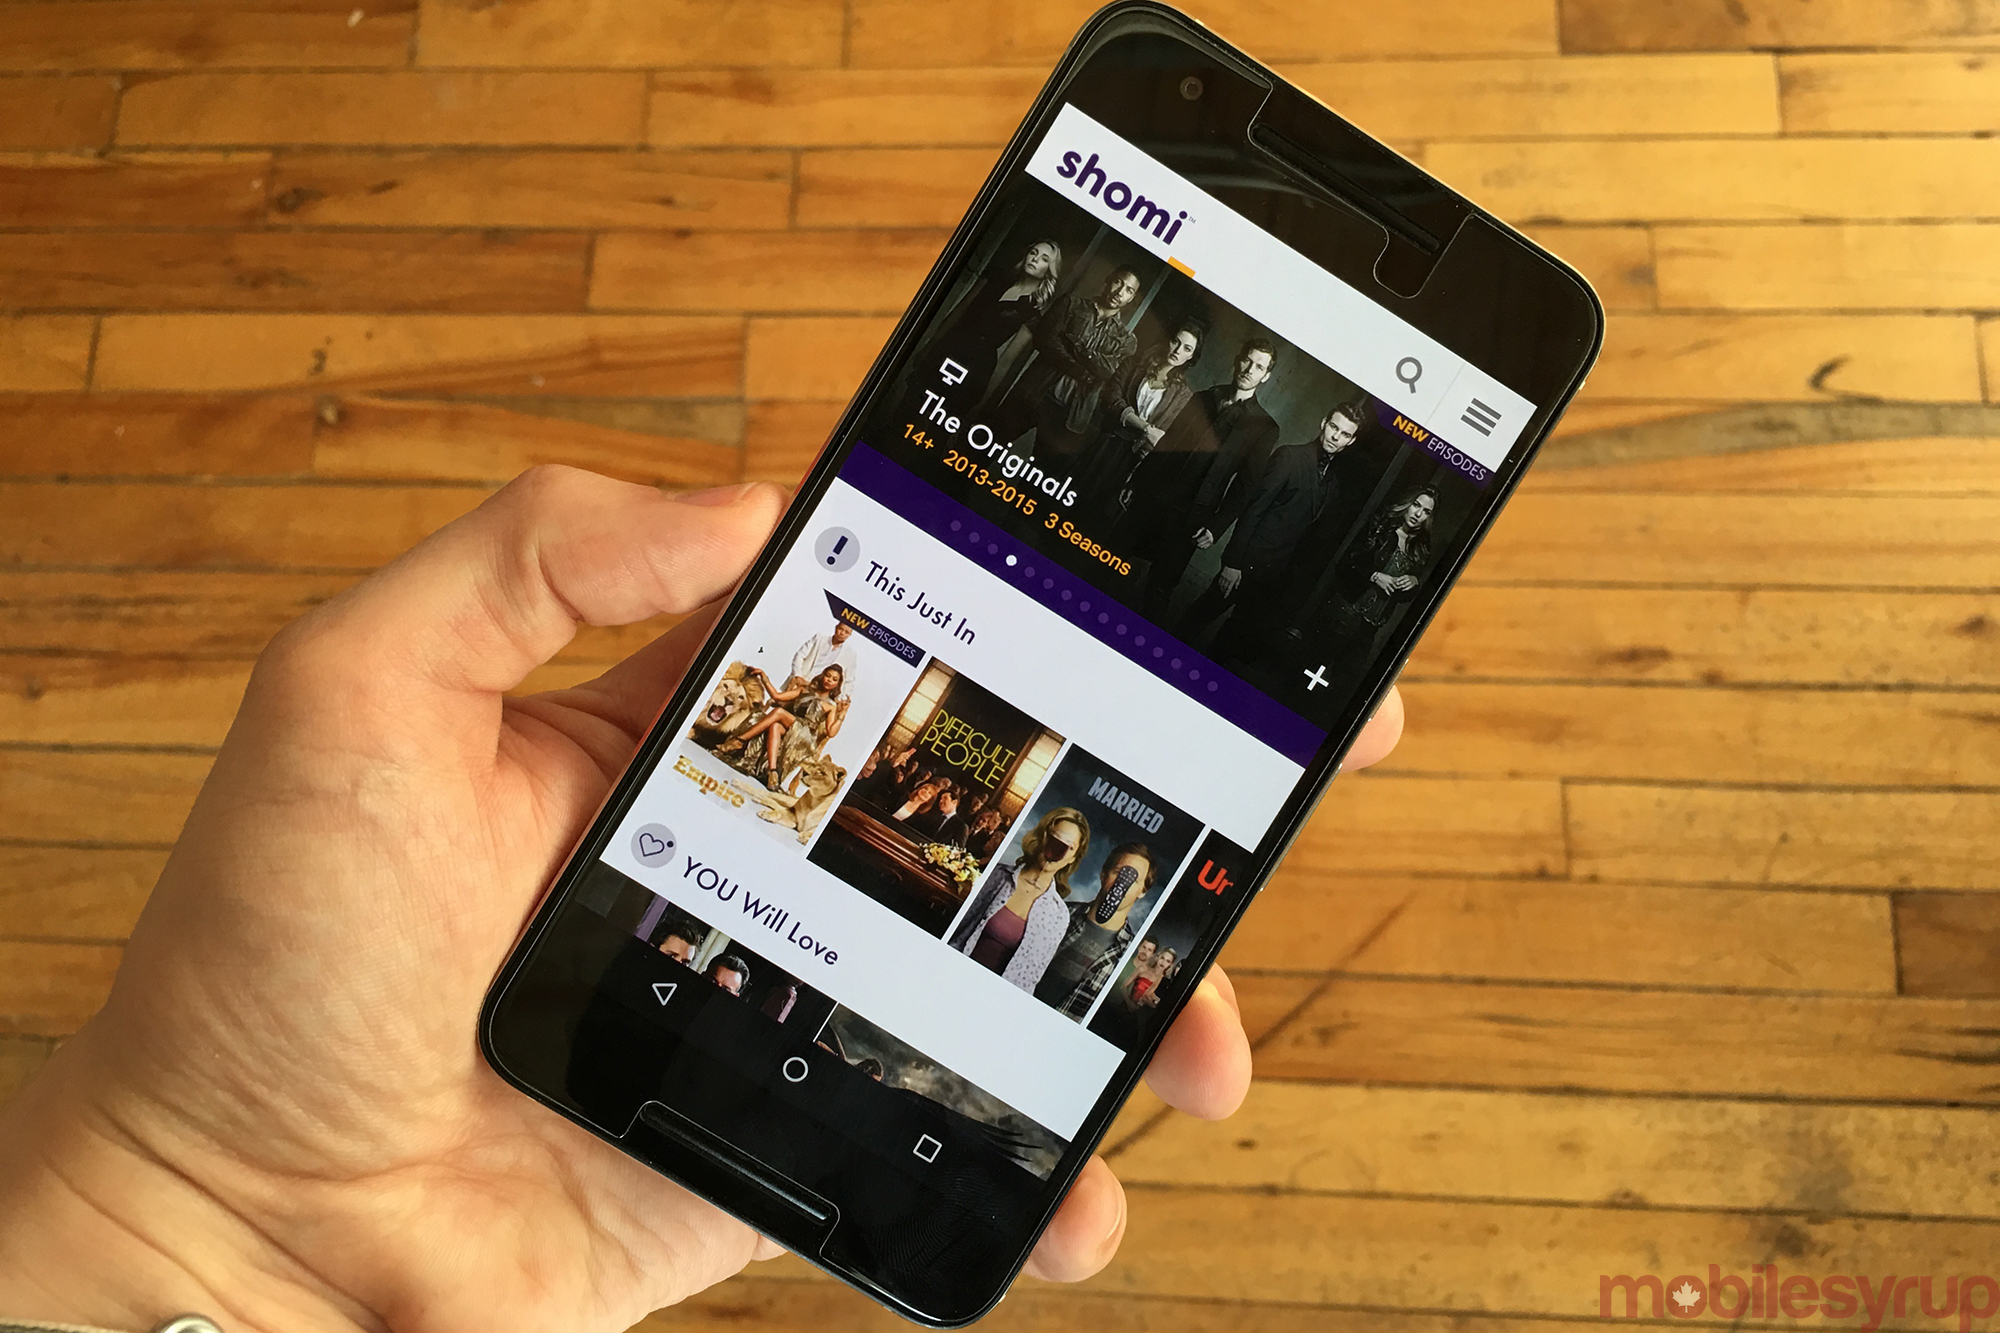 MyRogers And Shomi Mobile App Update Adds New Features